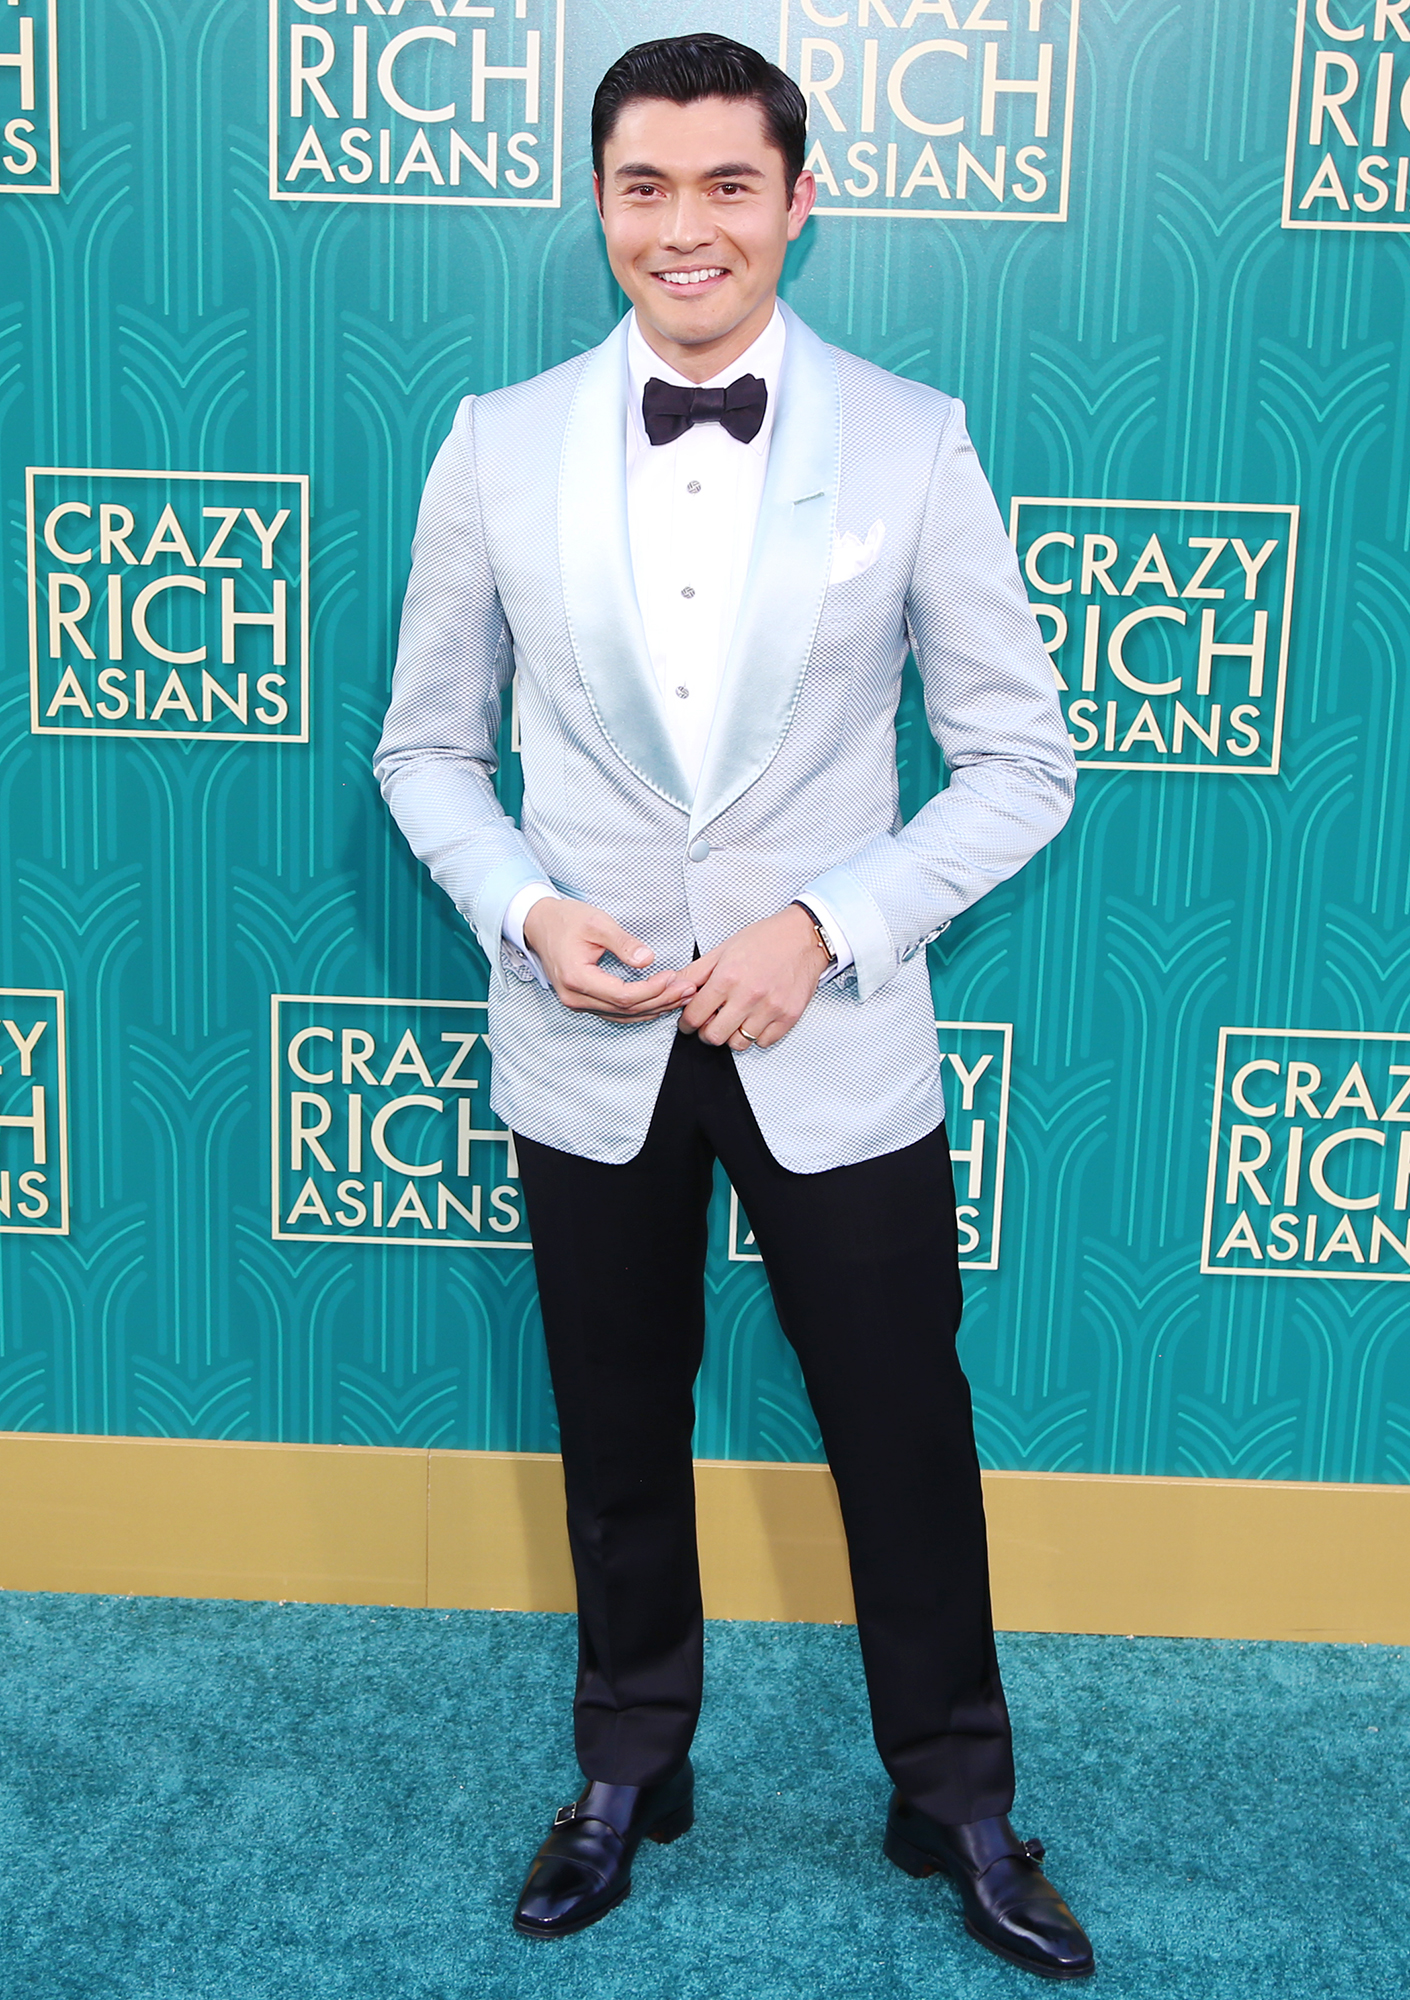 Crazy Rich Asians' Henry Golding: Cast IS 'Secondary' to 'Wonderful ...